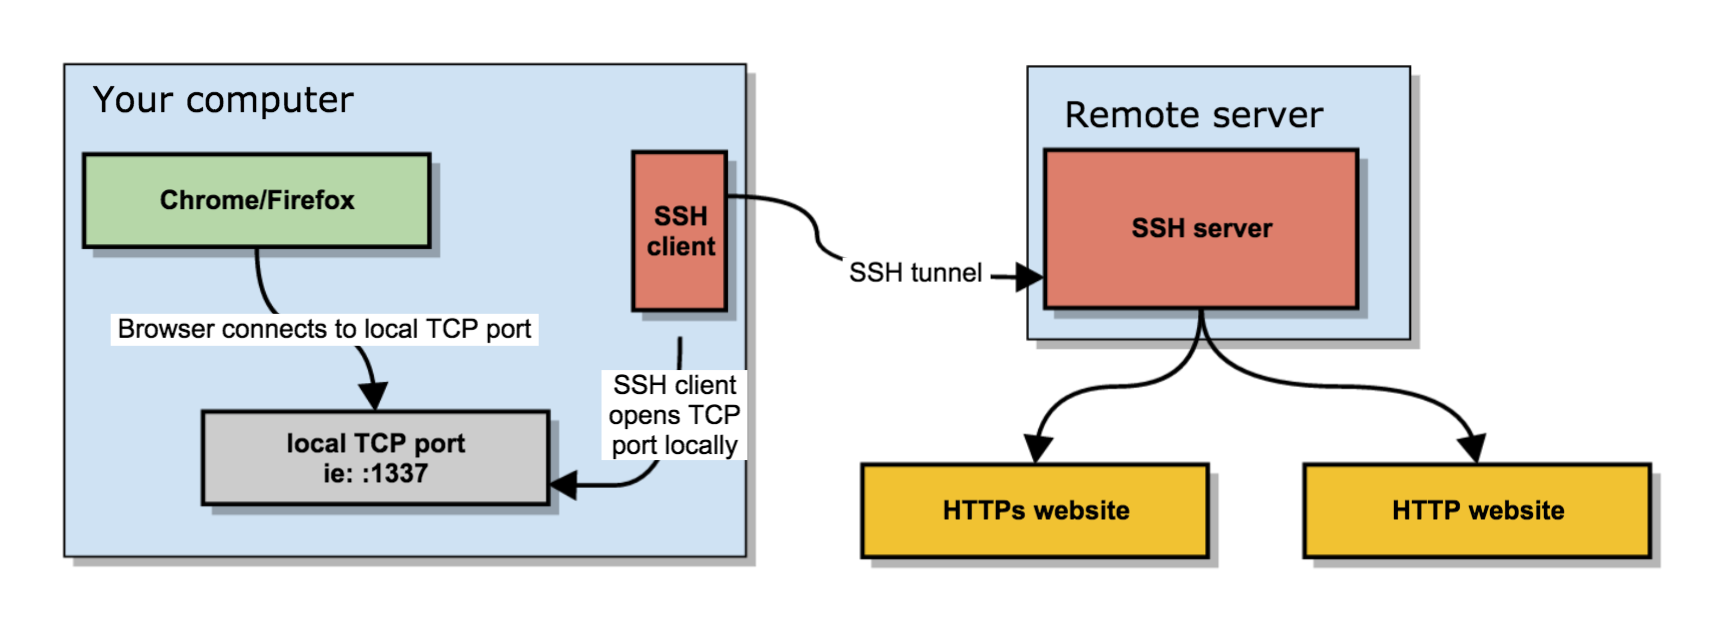 Create a SOCKS proxy on a Linux server with SSH to bypass content